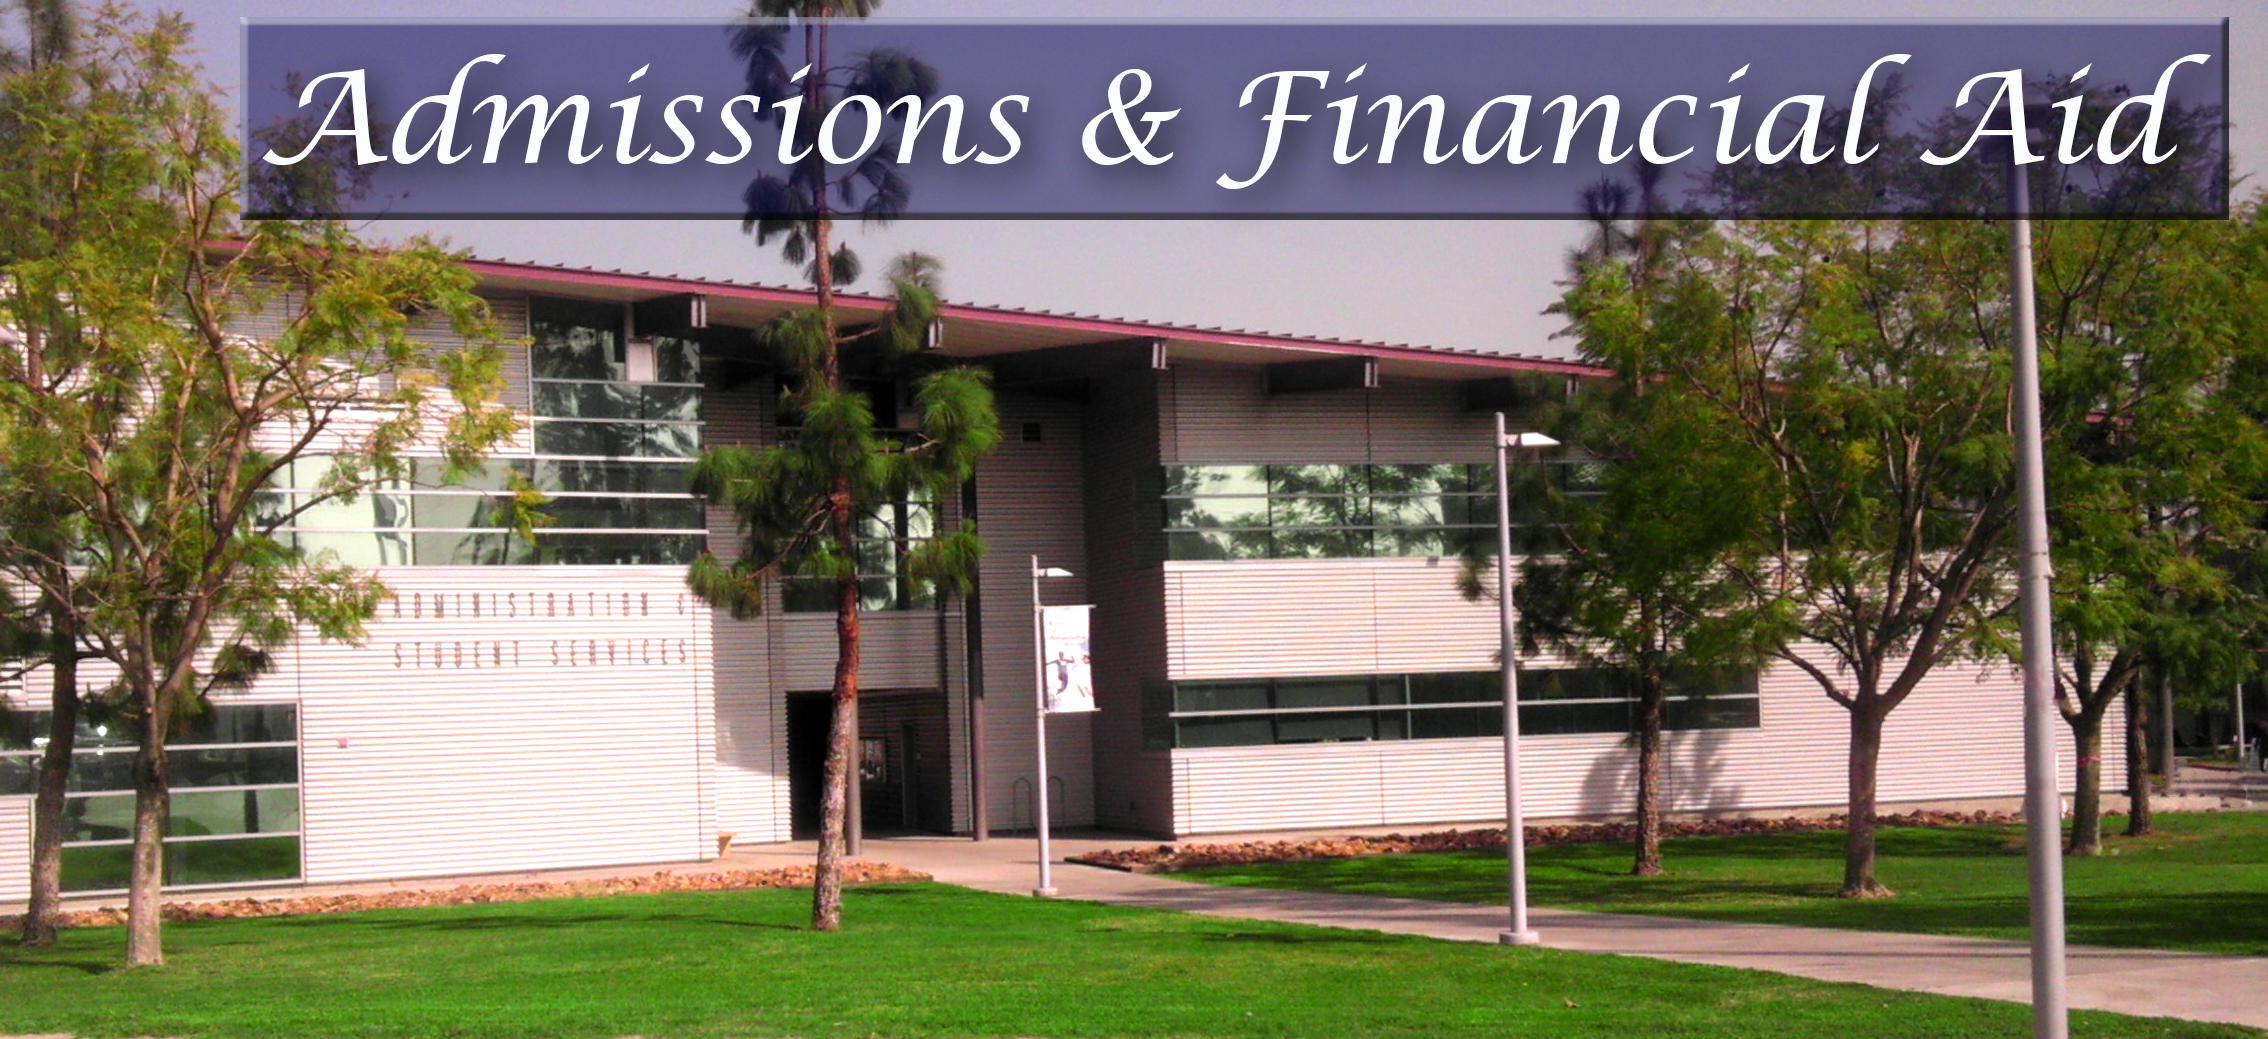 Admissions & Financial Aid Building